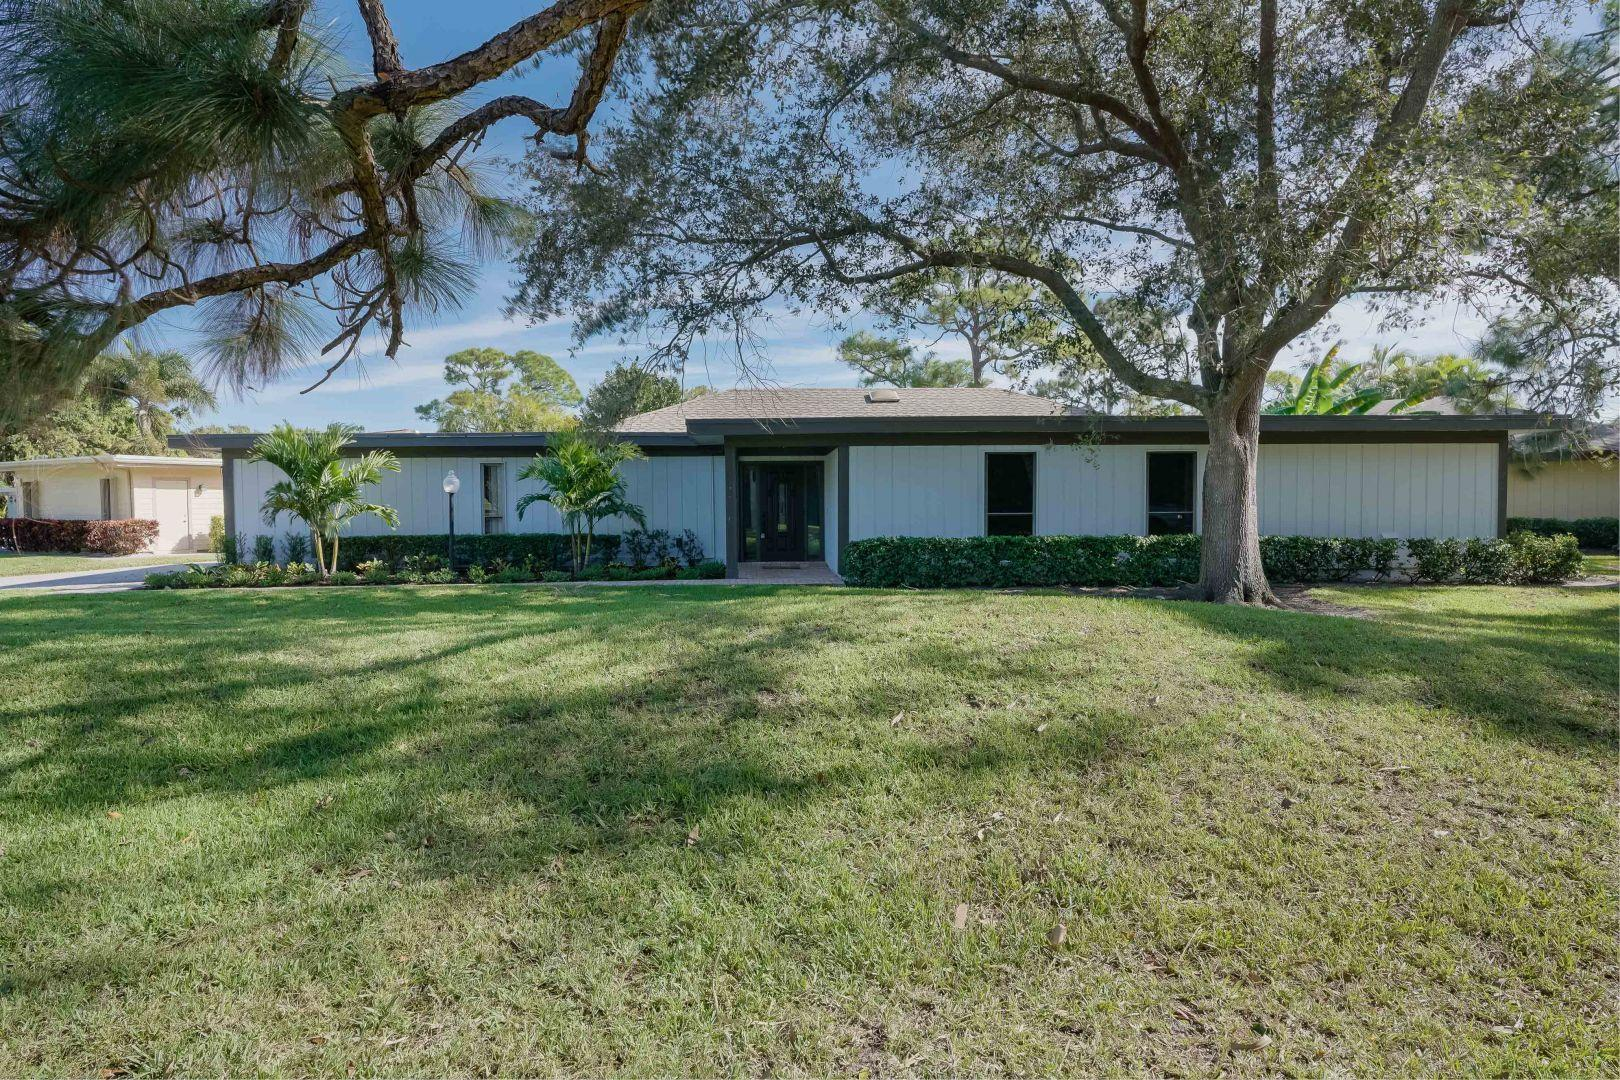 13264 Whispering Lakes Lane, West Palm Beach, Florida 33418, 3 Bedrooms Bedrooms, ,2.1 BathroomsBathrooms,A,Single family,Whispering Lakes,RX-10490368